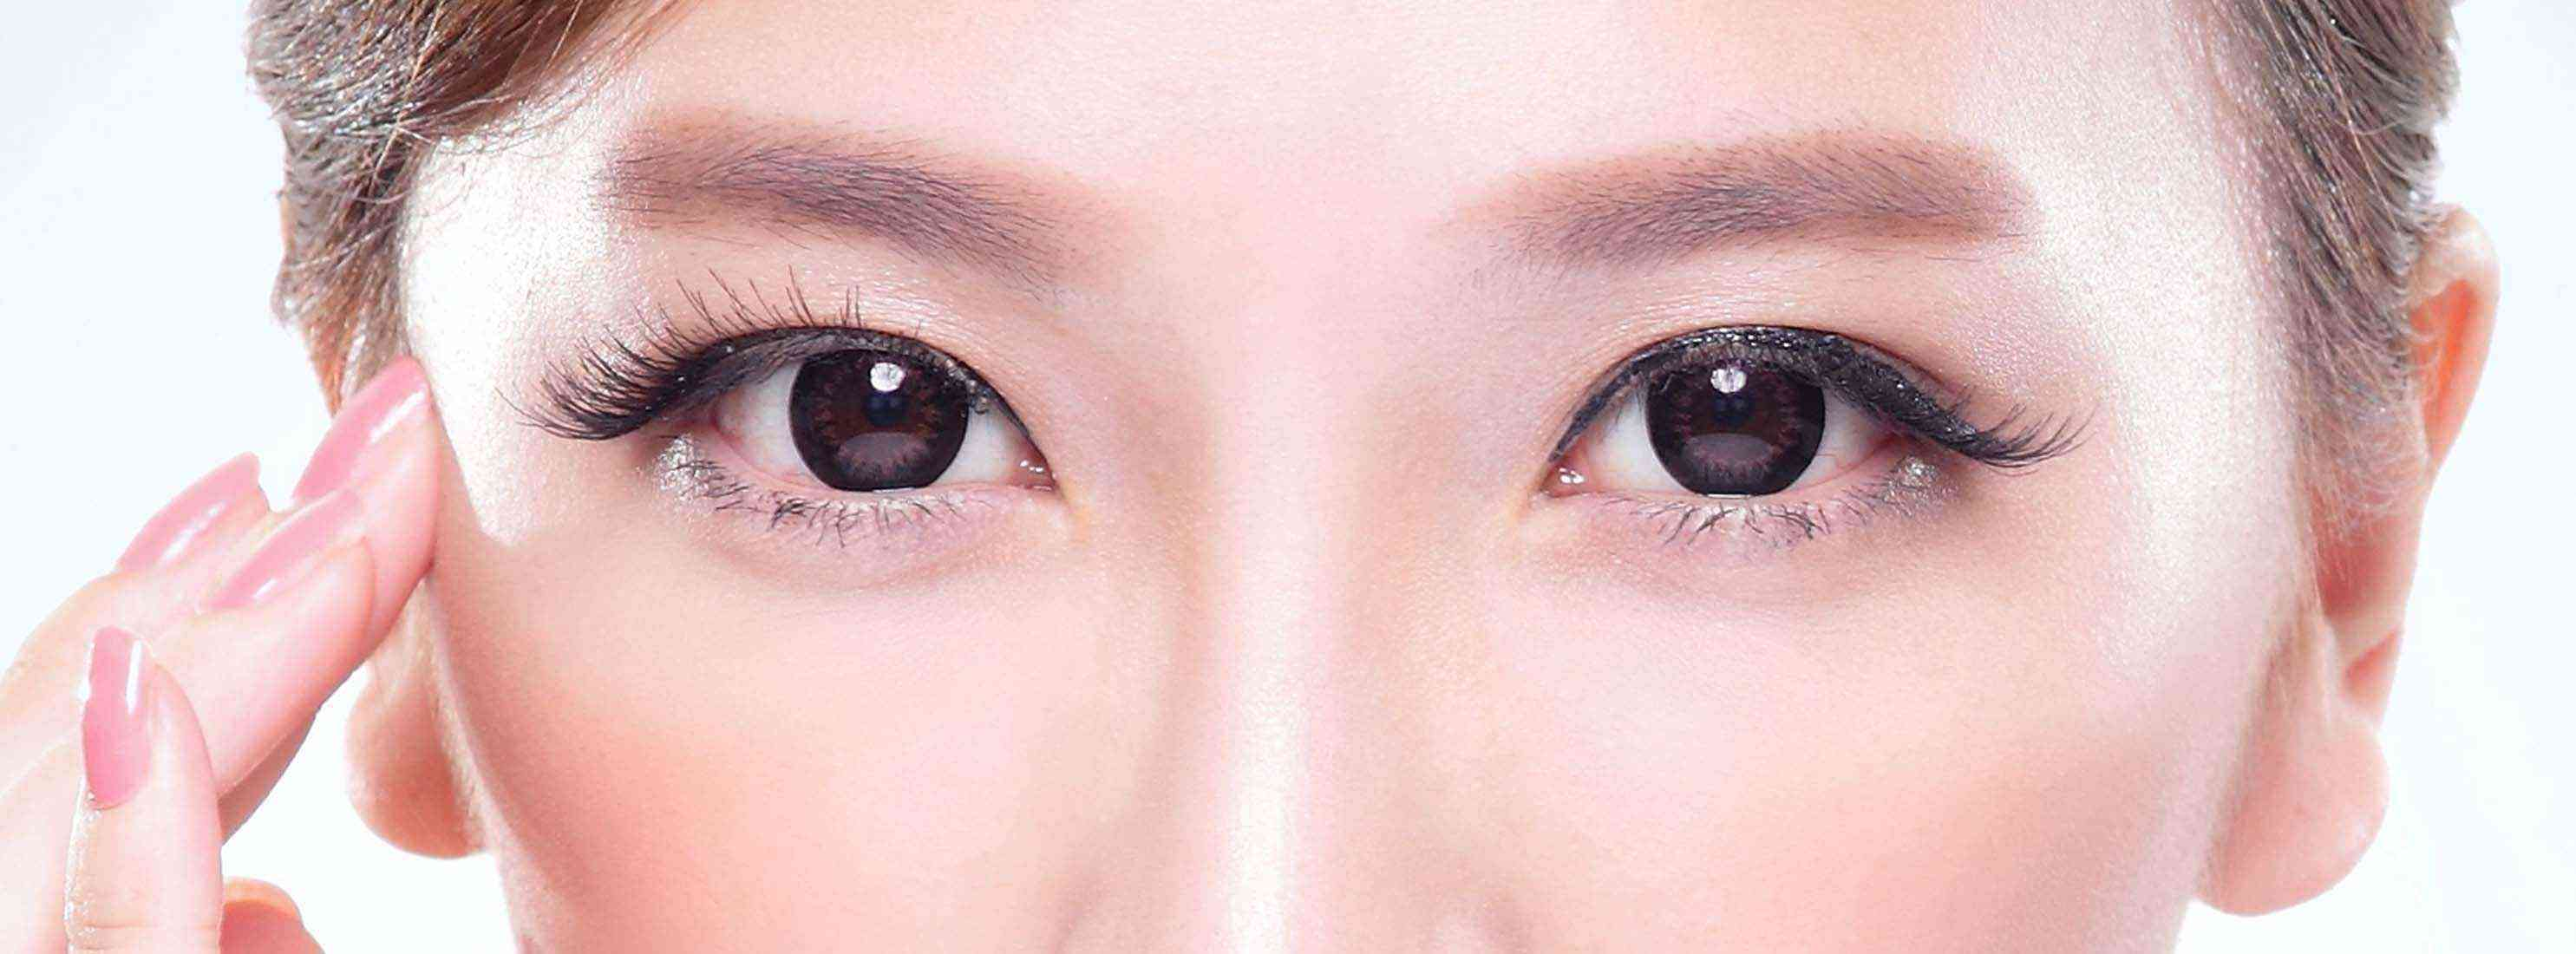 Coopervision Contact Lenses 04 2970x1100